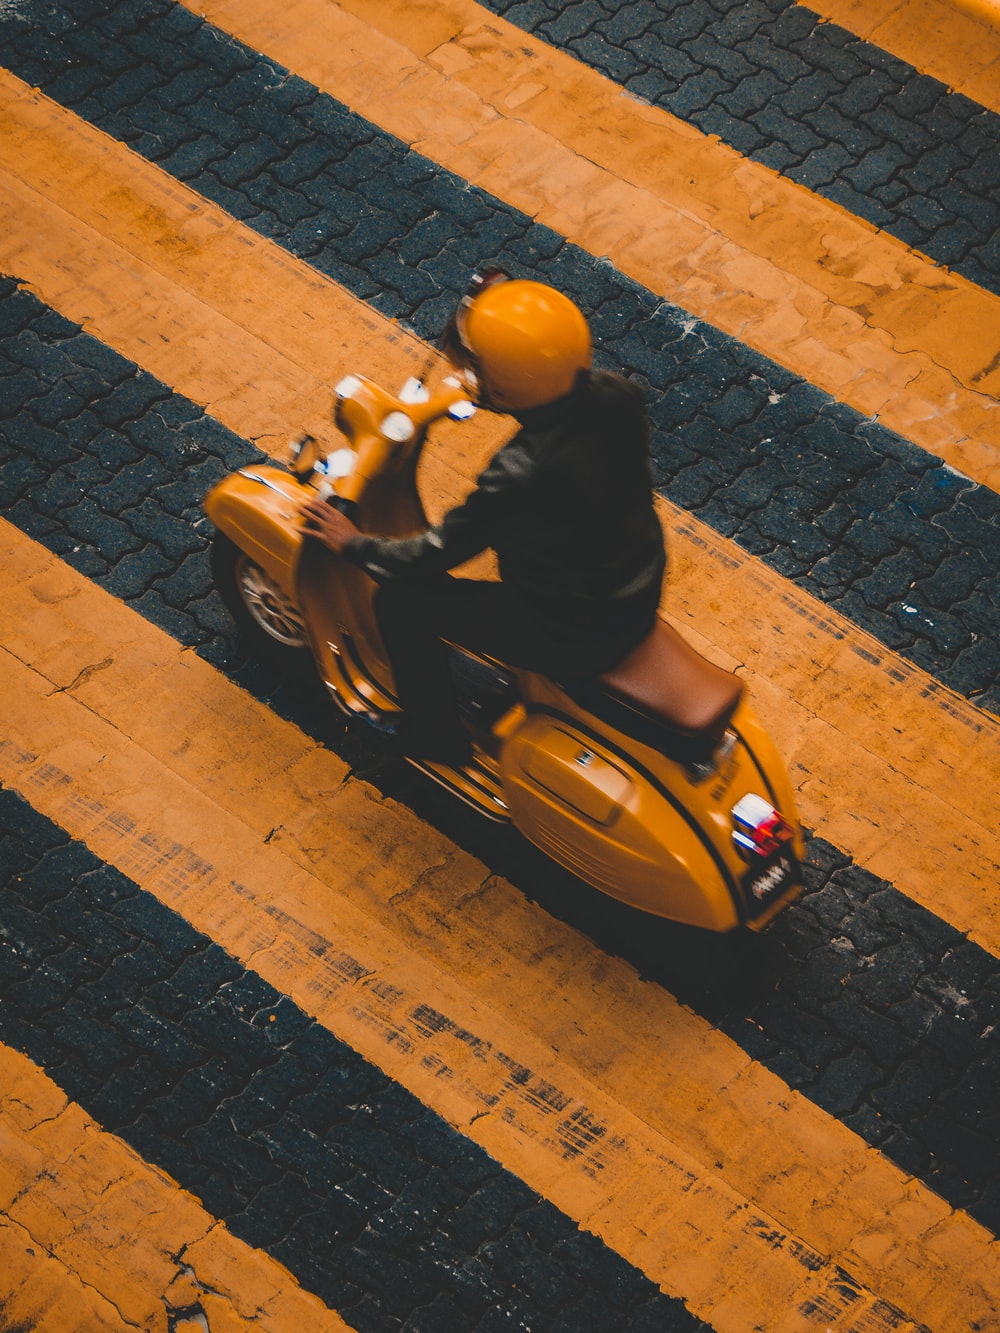 man riding on yellow motor scooter on striped yellow lines